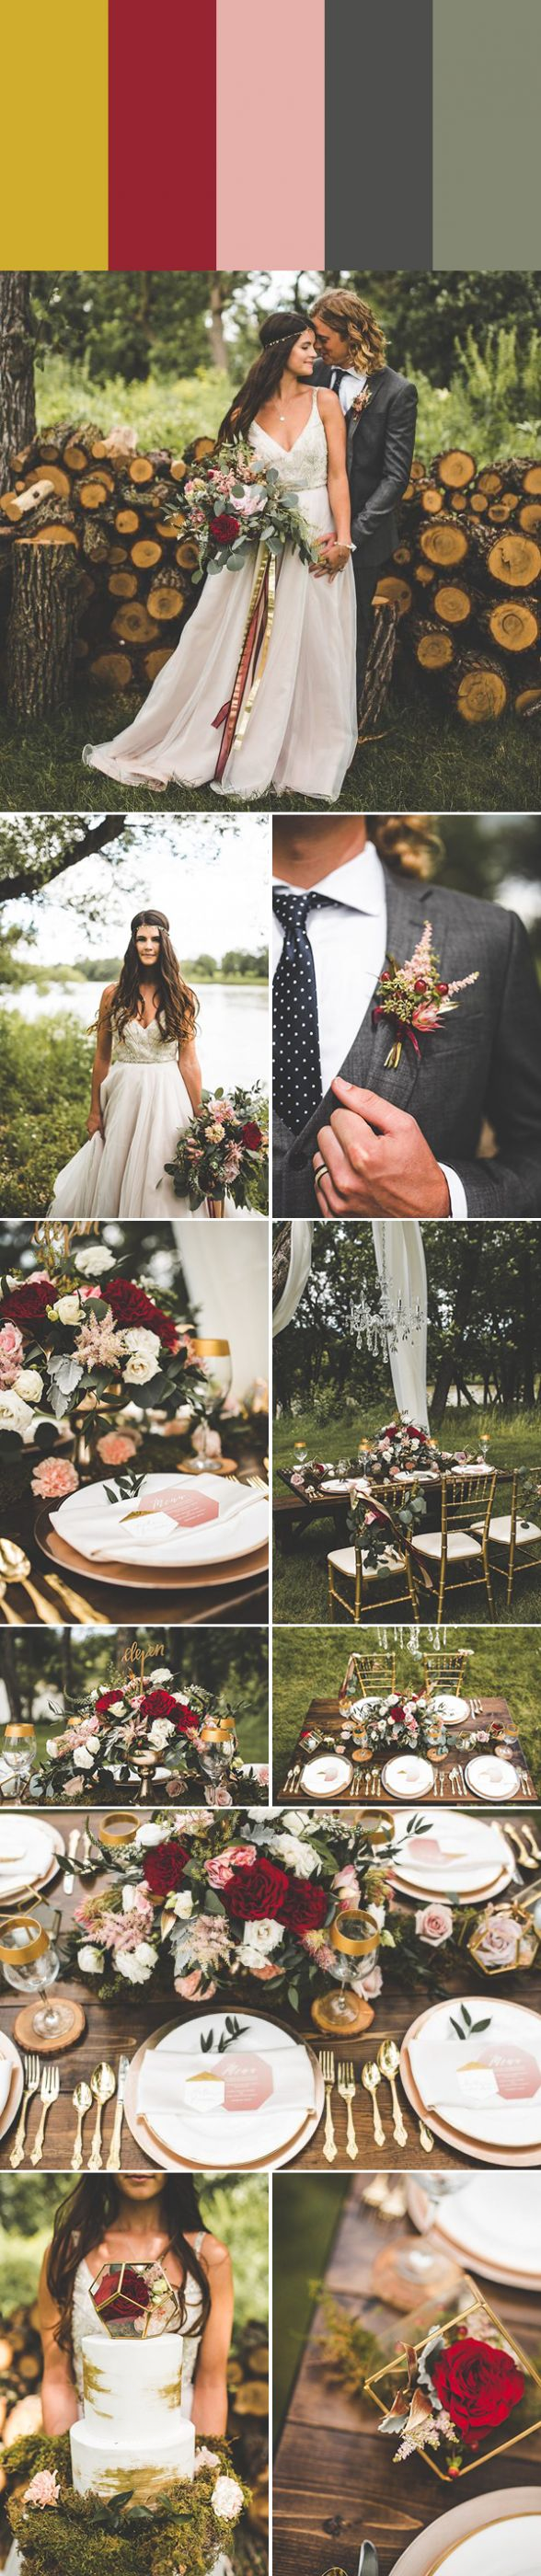 Choose one of these metallic wedding color palettes including gold, copper, silver, and more to add a little sparkle to your wedding day!